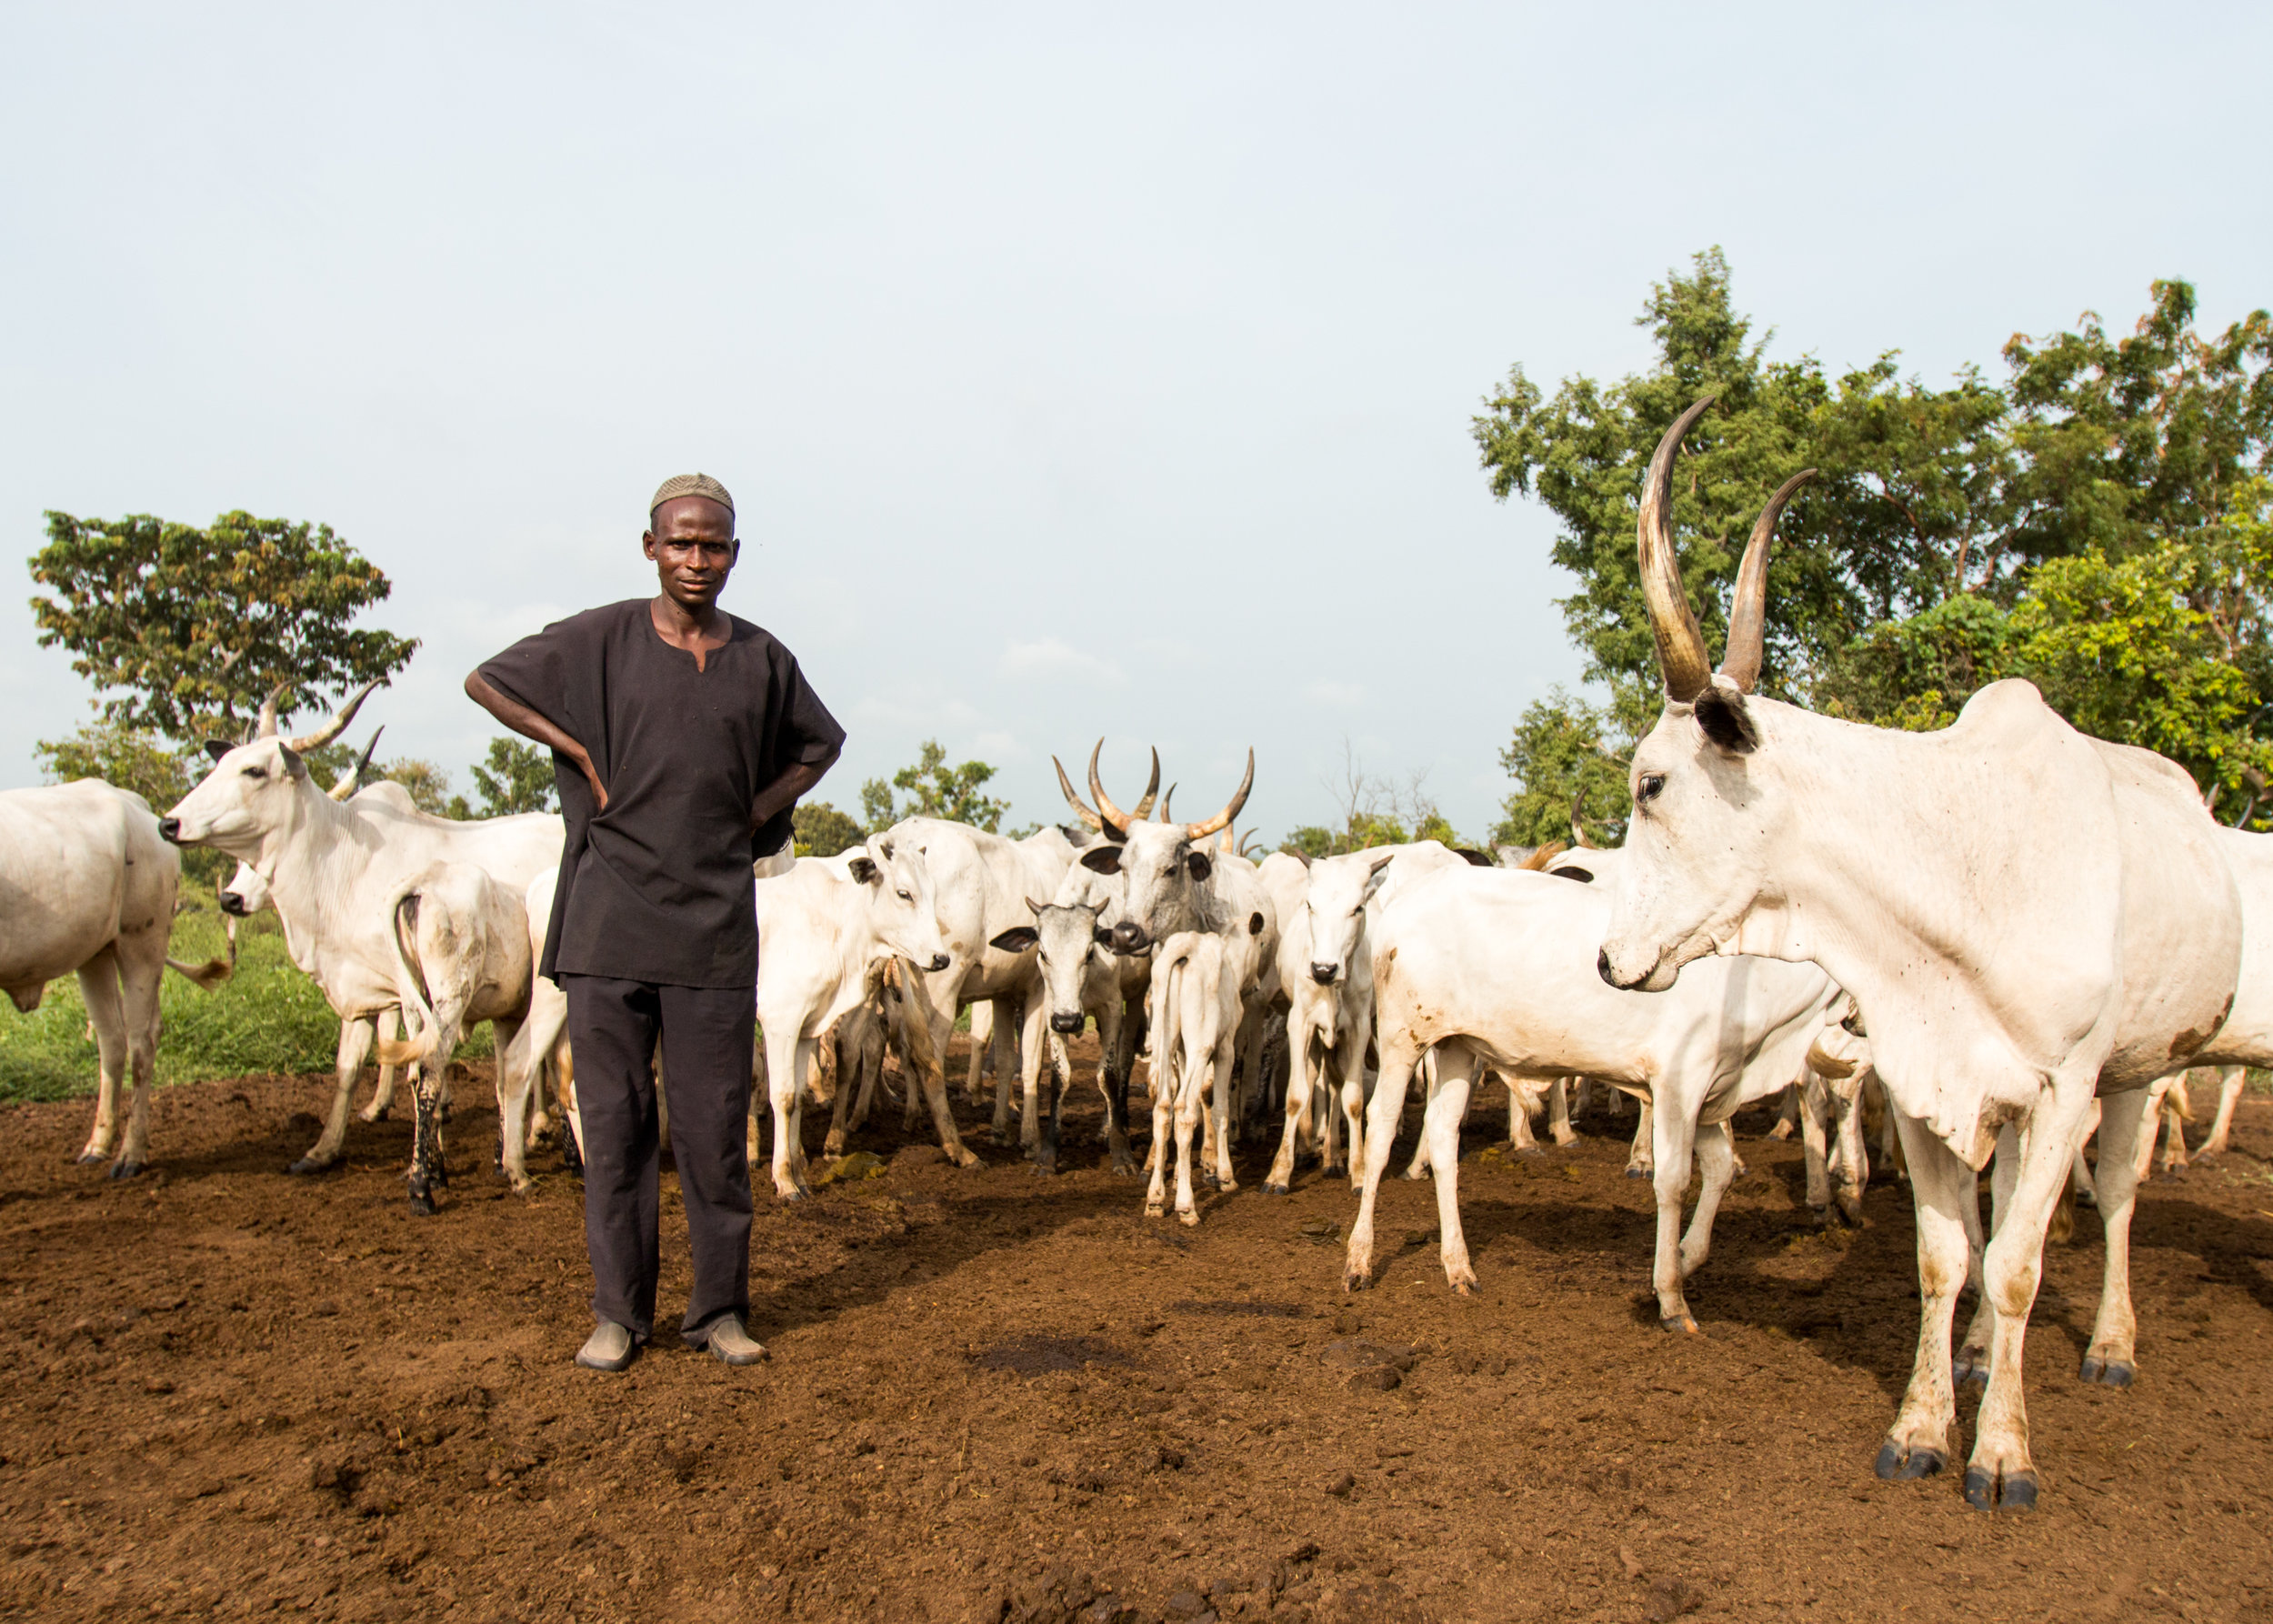 Saminu Mohammad is a Fulani cattle herder who decided to defy Benue State's ban on cattle grazing. (Tim McDonnell)